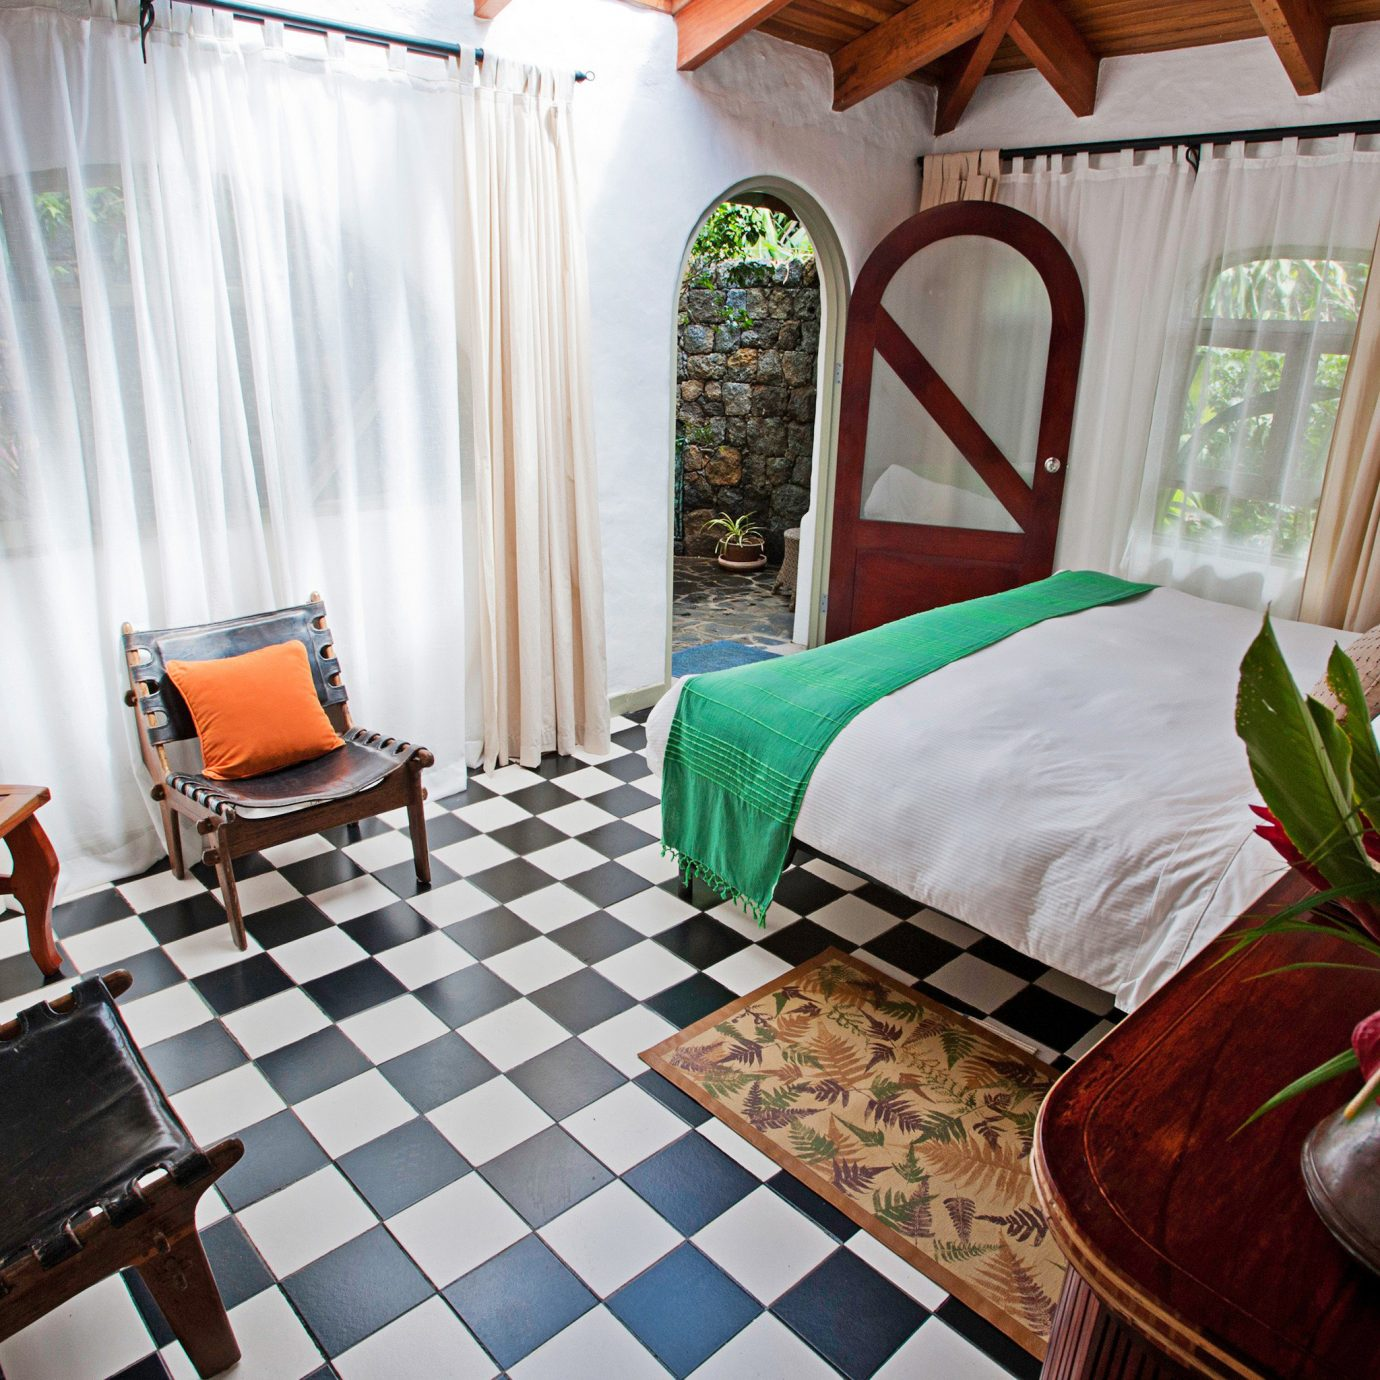 Bedroom Country Jungle Rustic property home cottage Resort Villa Suite living room Dining plant